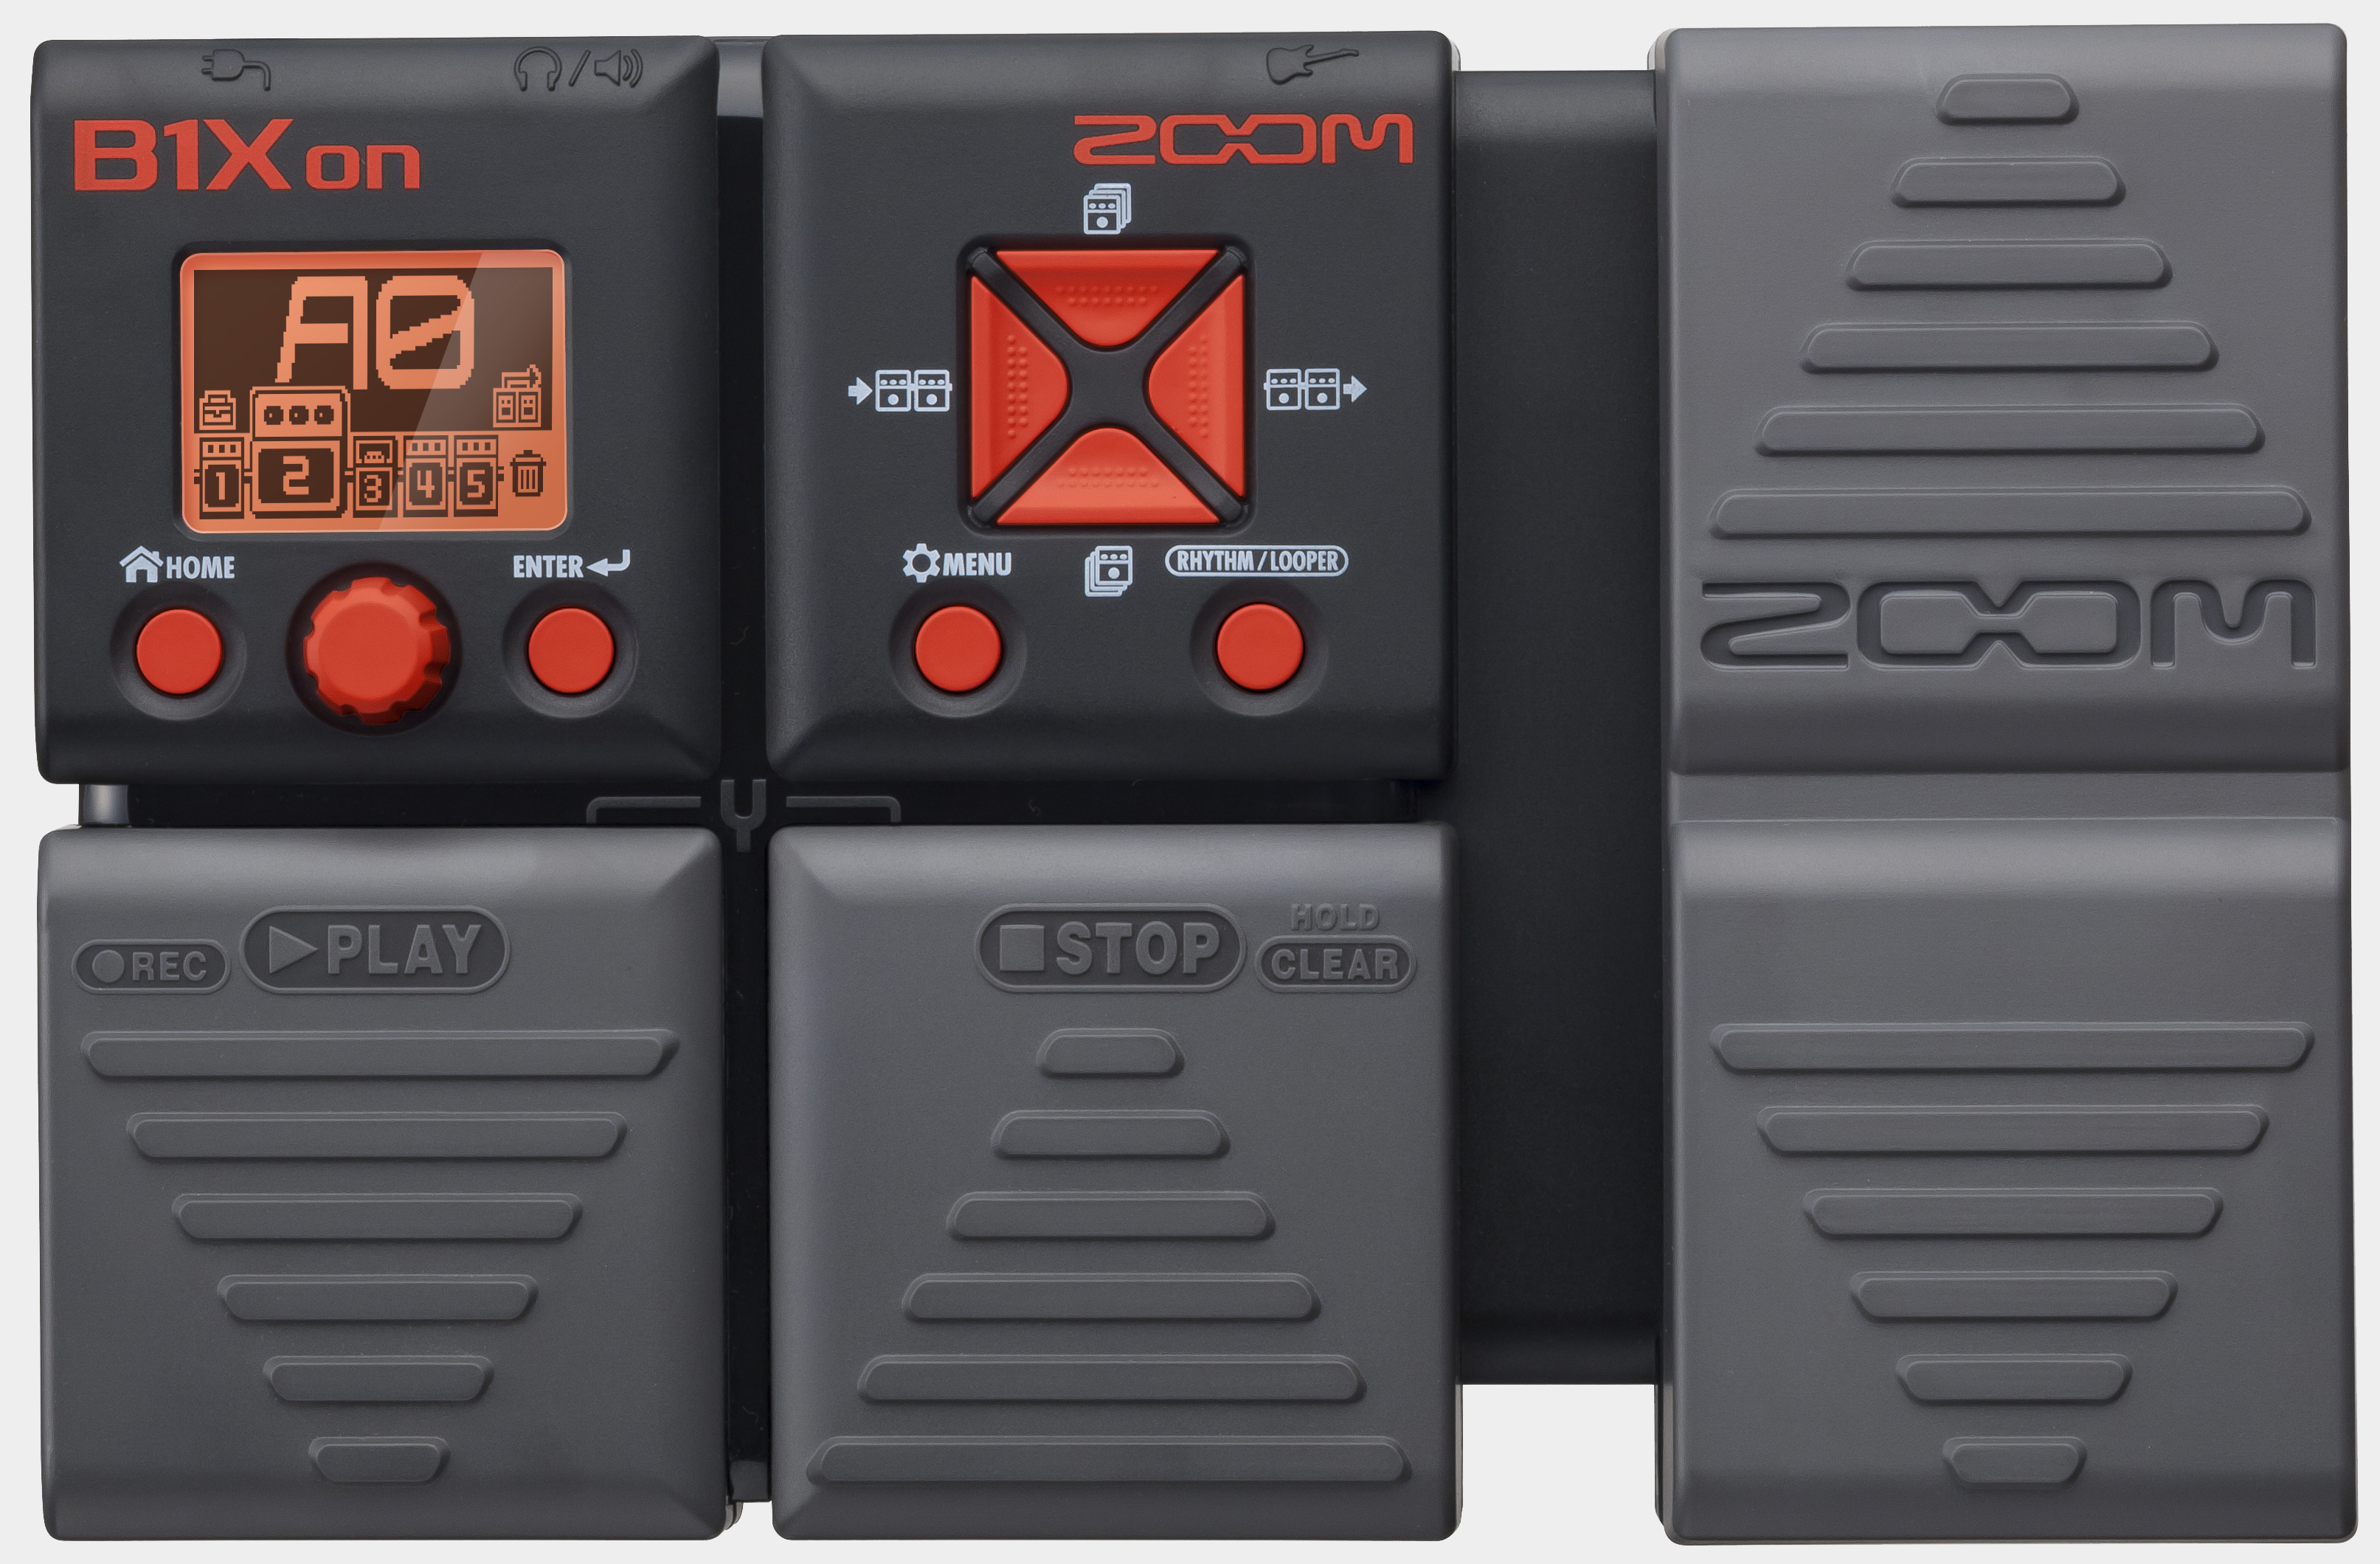 ZOOM B1Xon Top